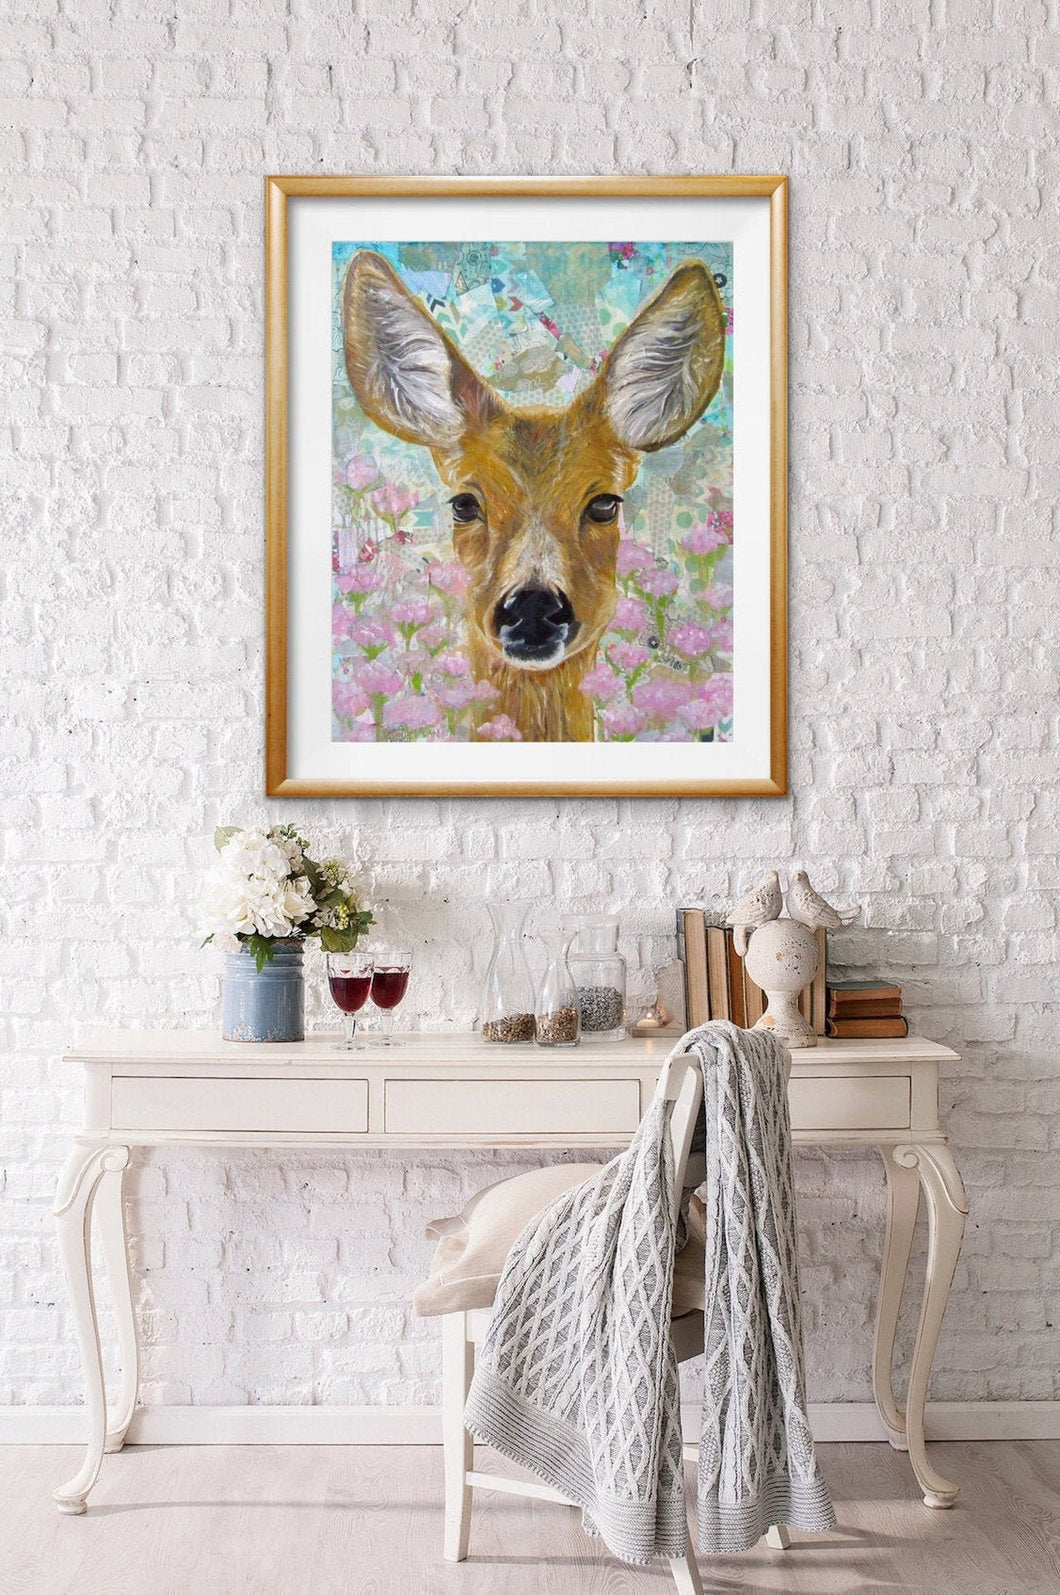 Giclee fine art print of original deer oil painting